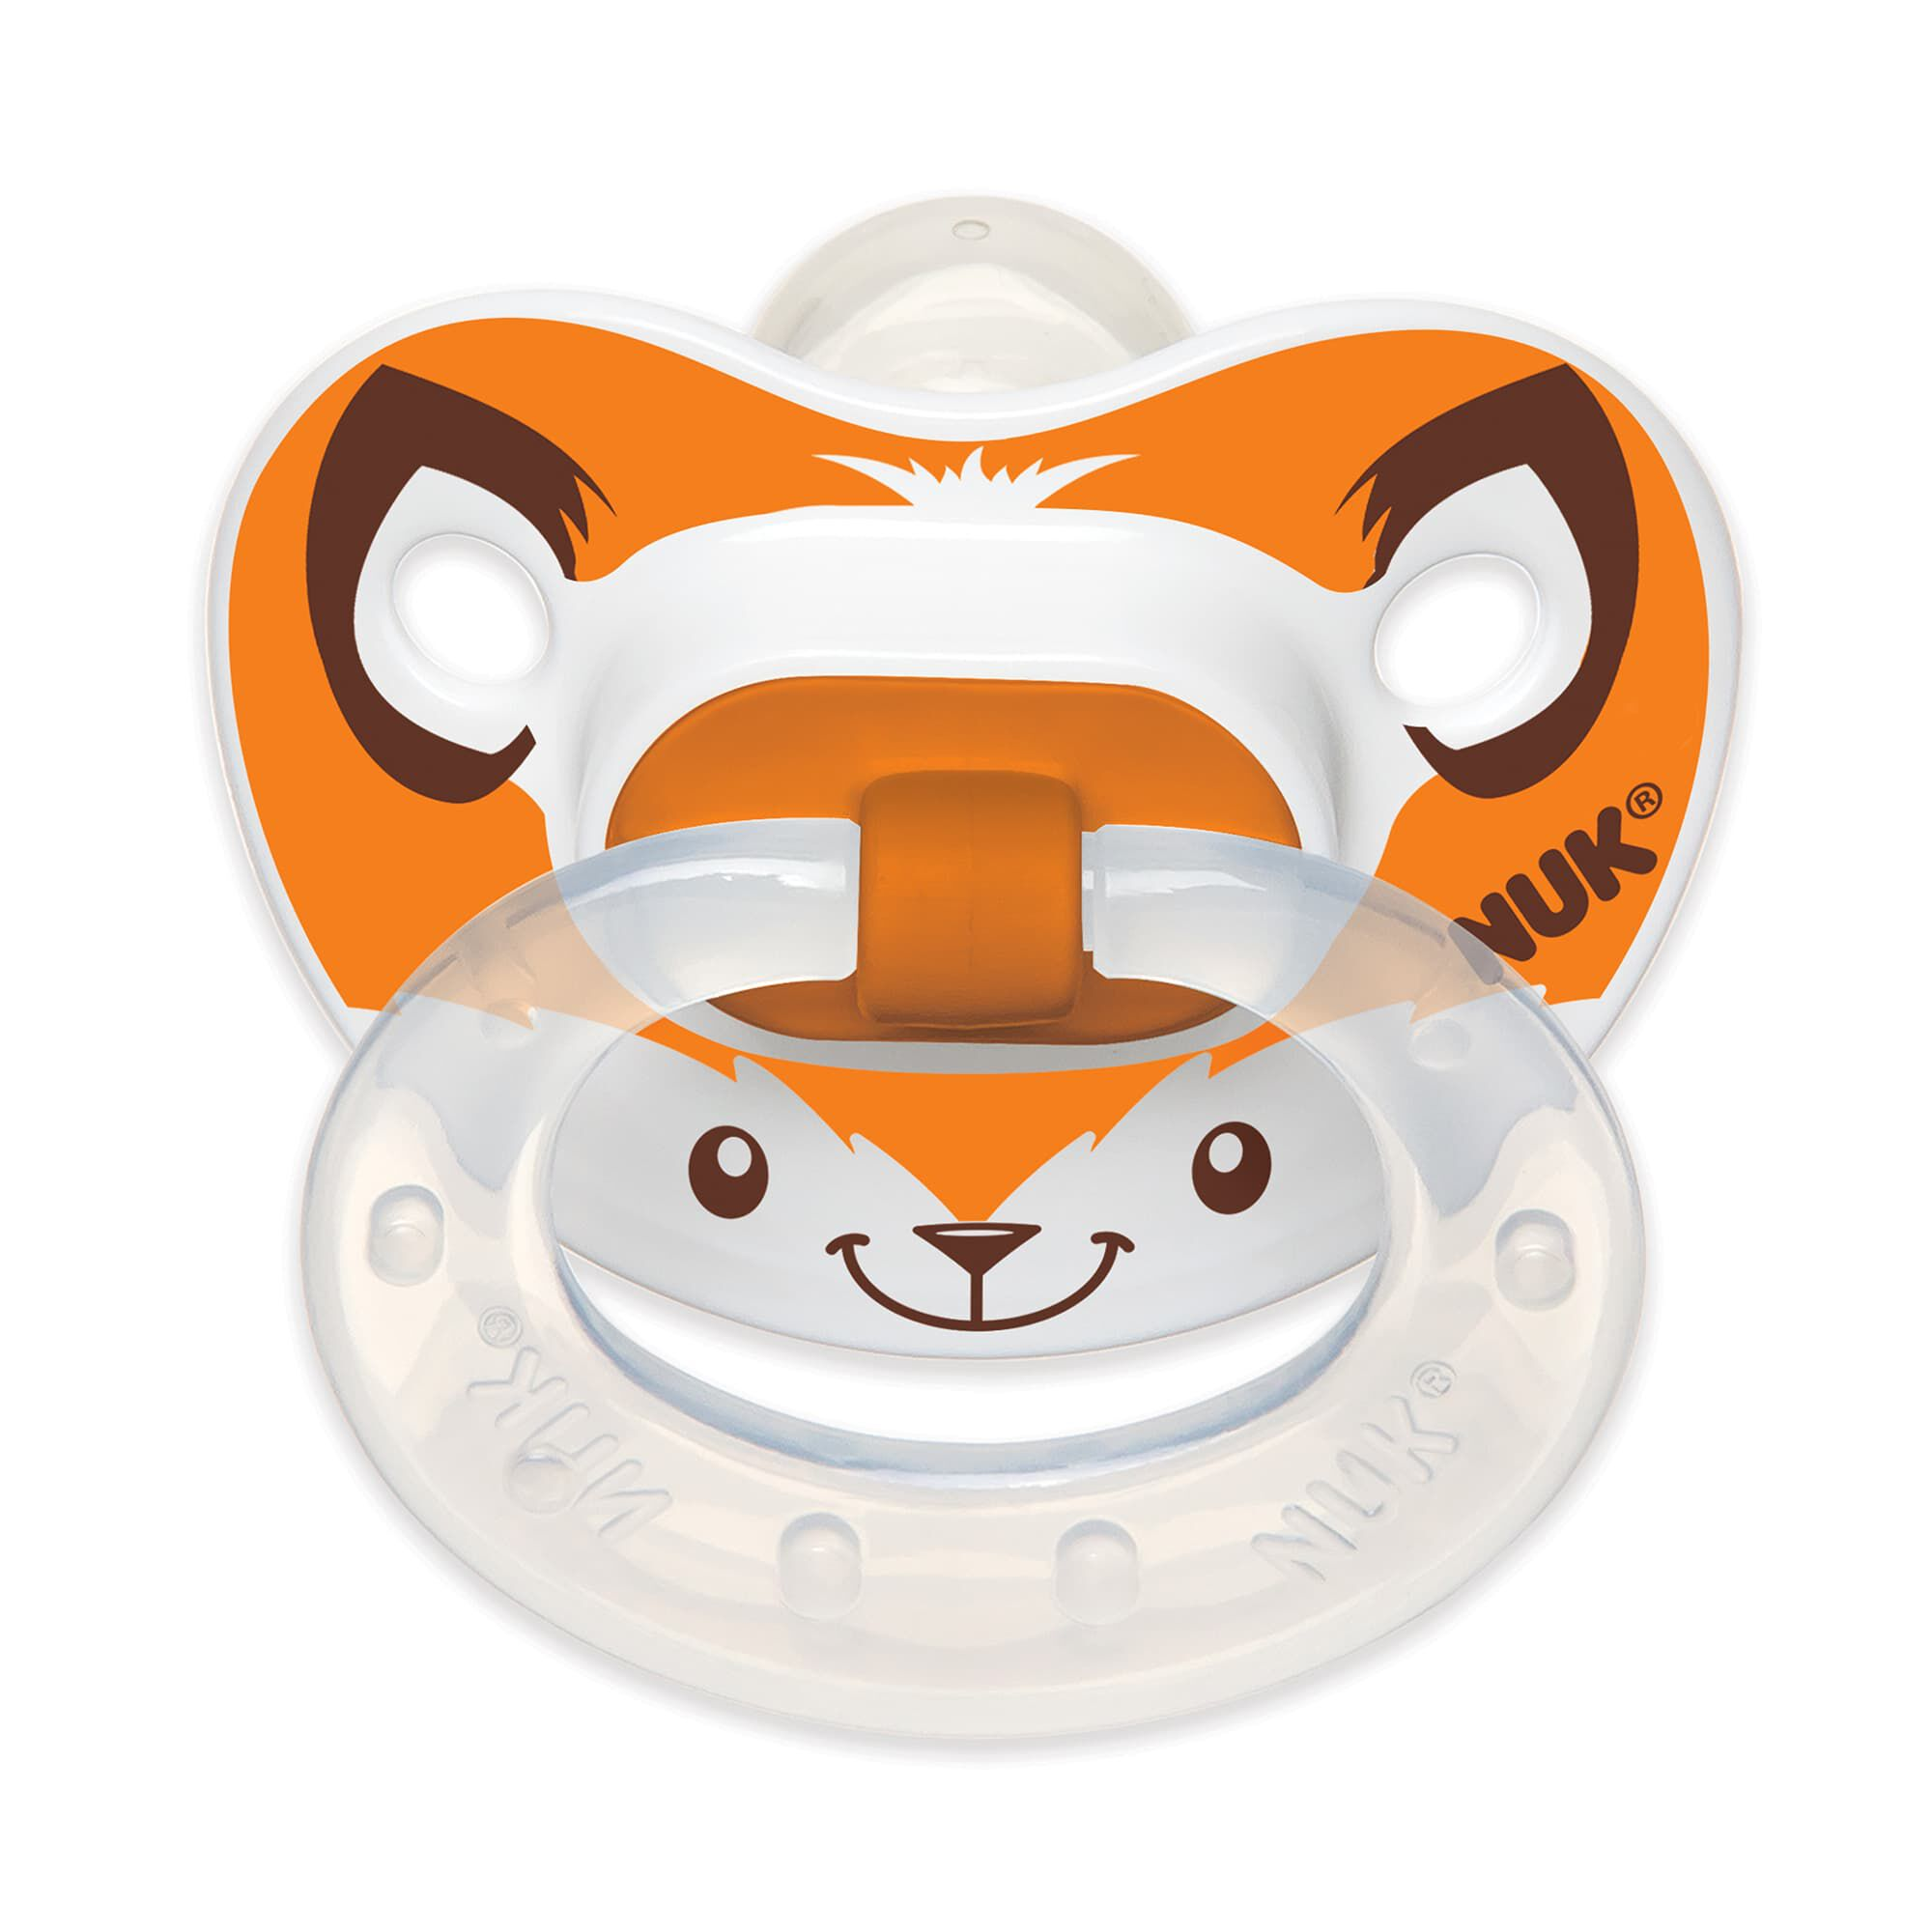 Full size bed with storage - Nuk 174 Animal Faces Orthodontic Pacifier 6 18 Months 2 Pack Hi Res